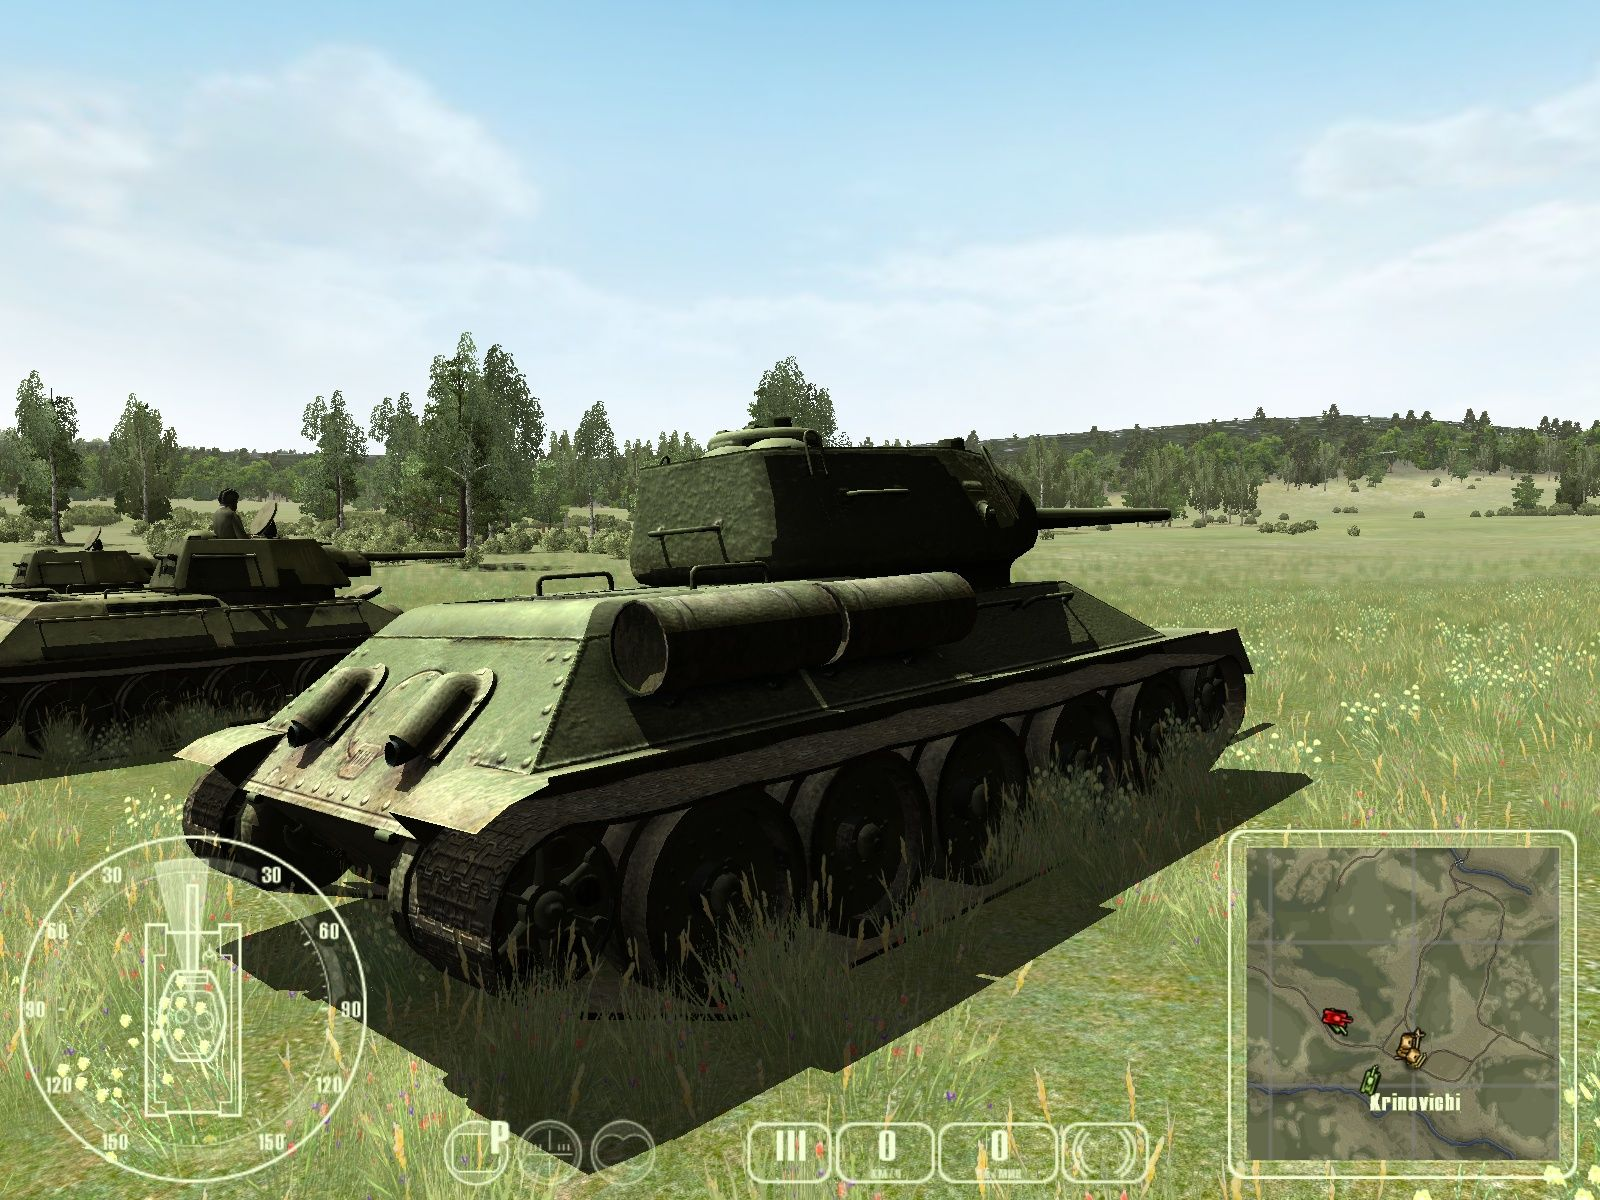 WWII Battle Tanks: T-34 vs. Tiger Windows Meet the Russian T-34